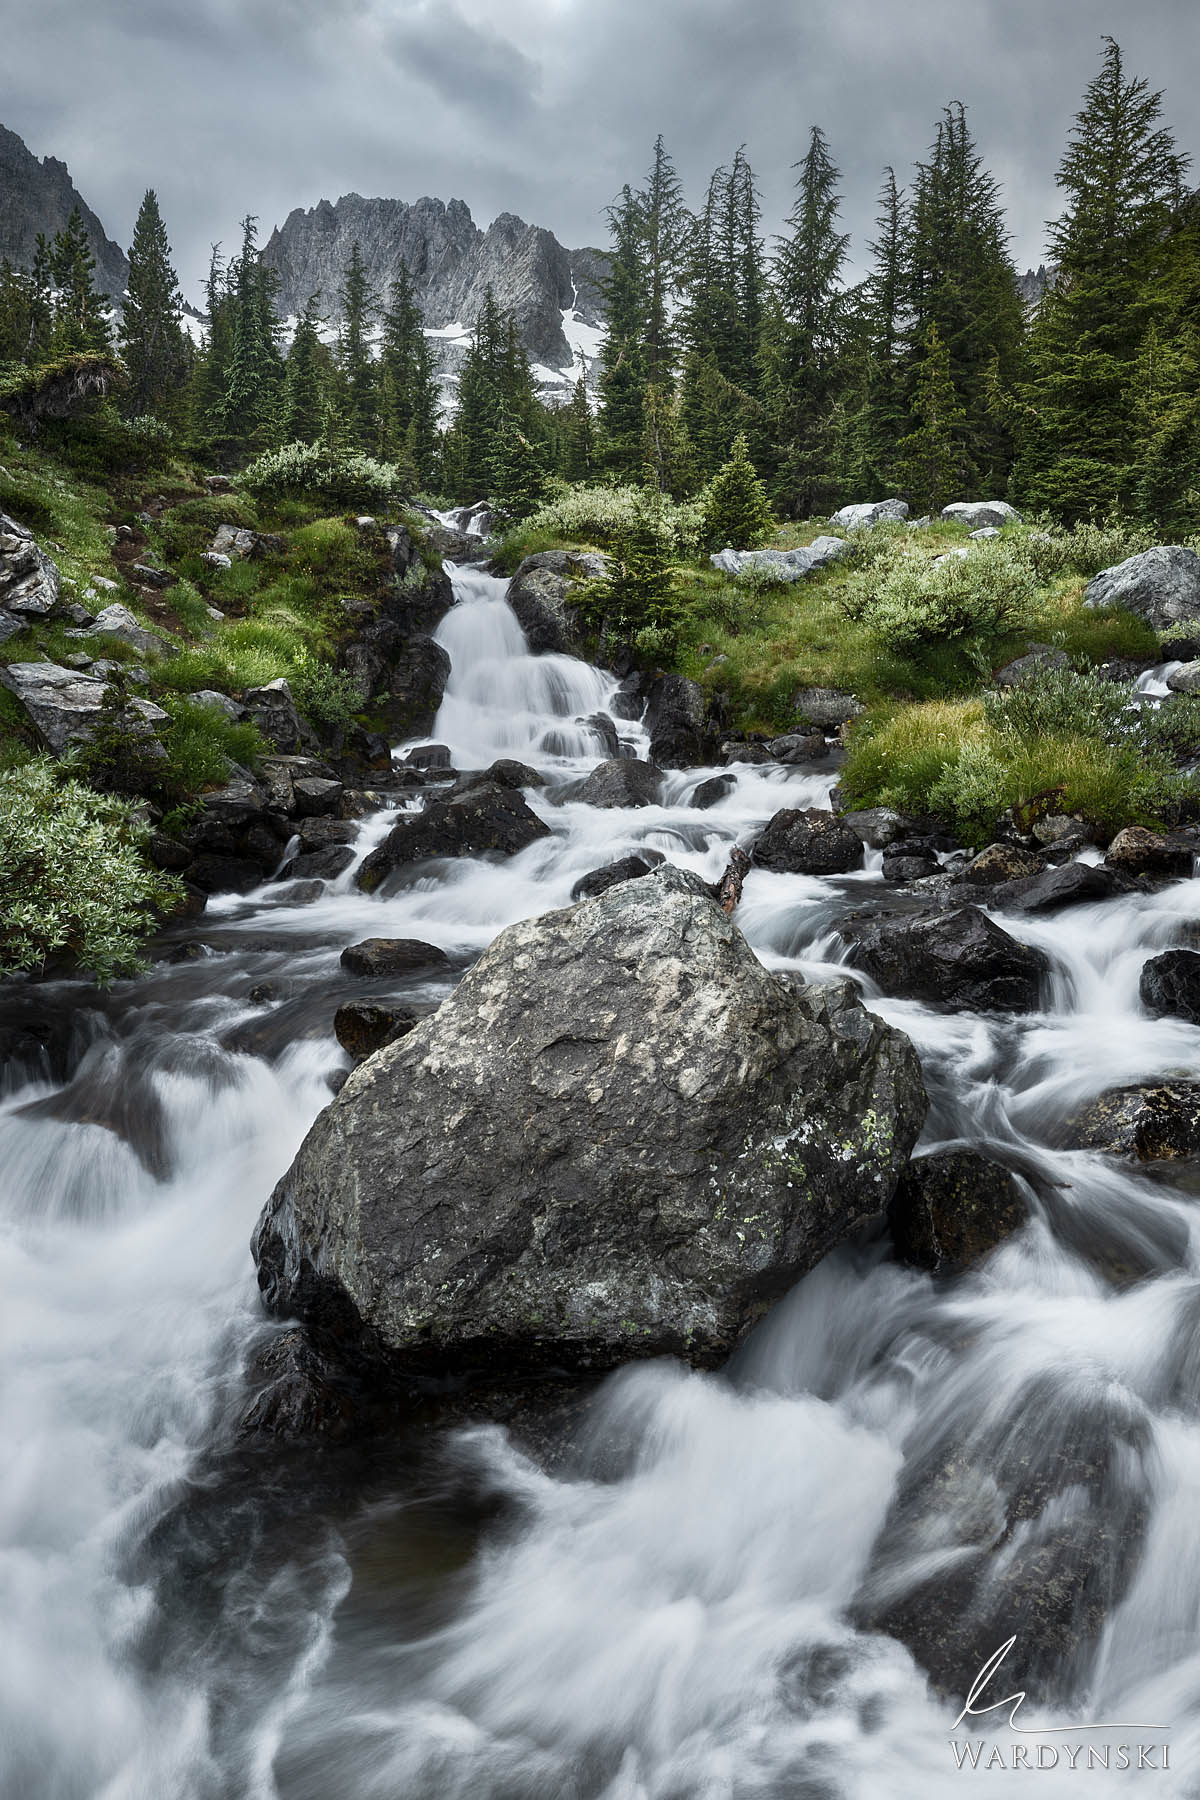 Fine Art Print | Limited Edition of 200  Alpine creeks are the life source for not only the Sierra Nevada mountains but for the...